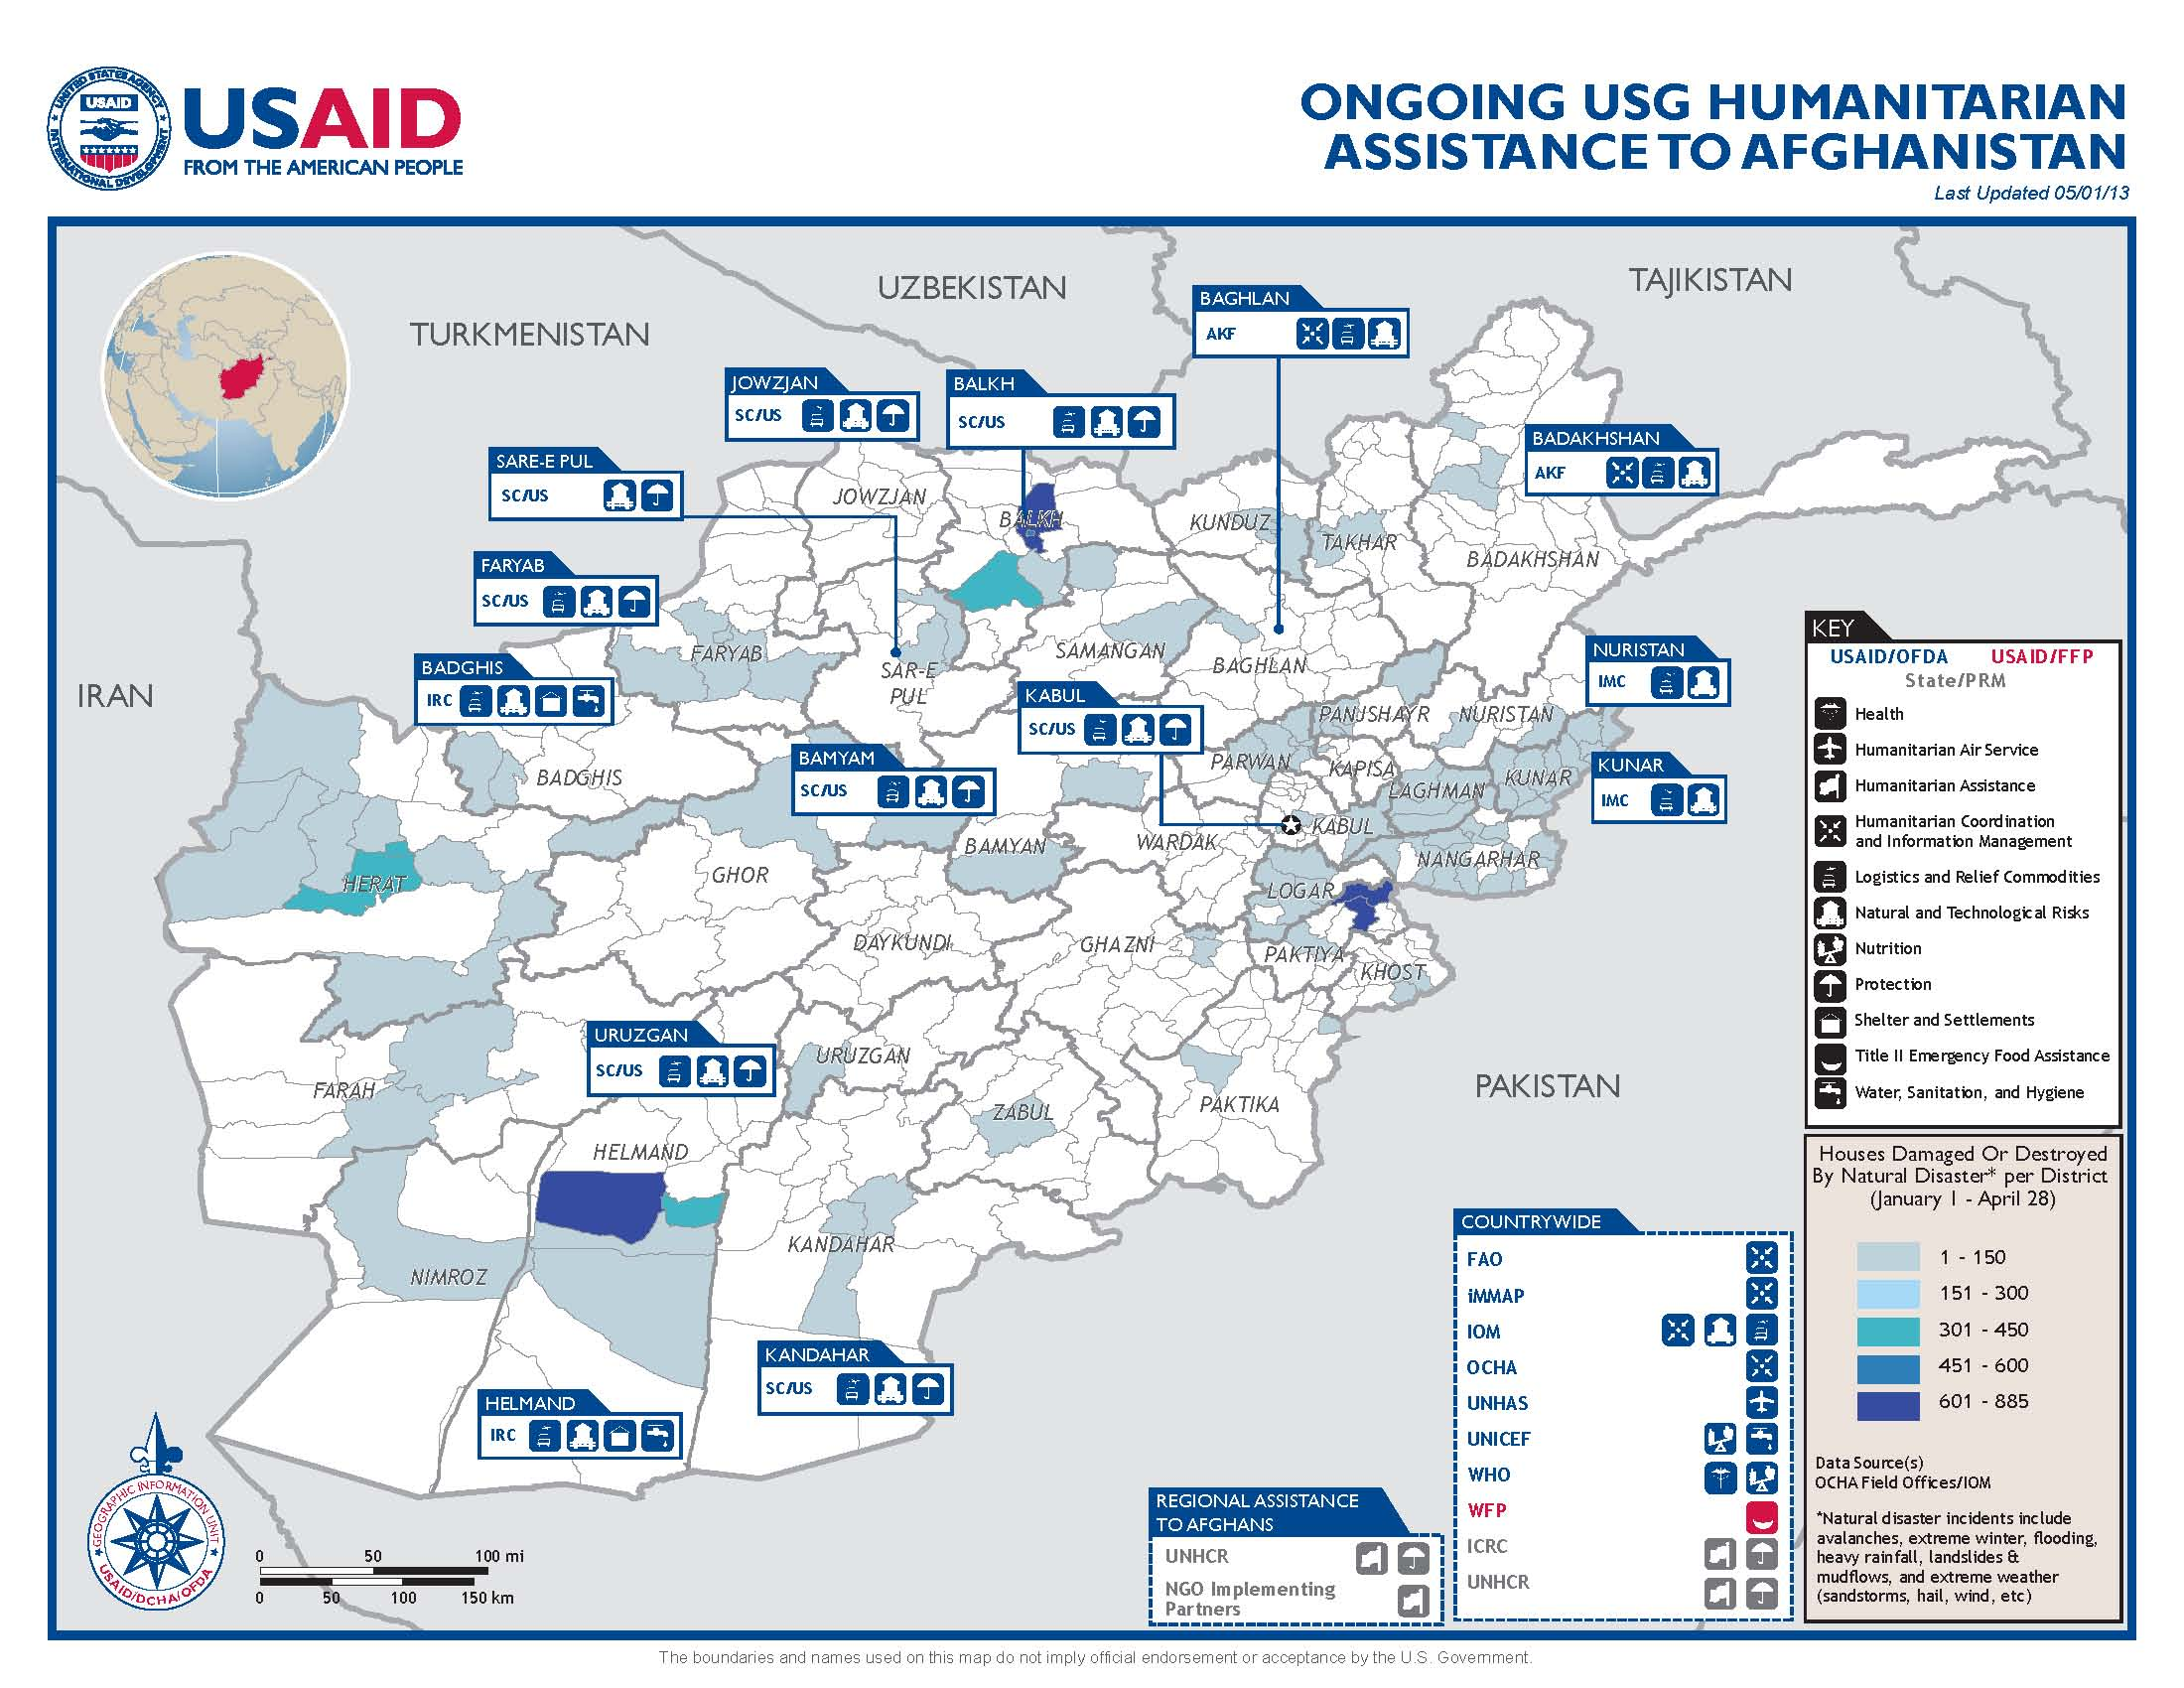 usg humanitarian istance to afghanistan program map 05 01 2013